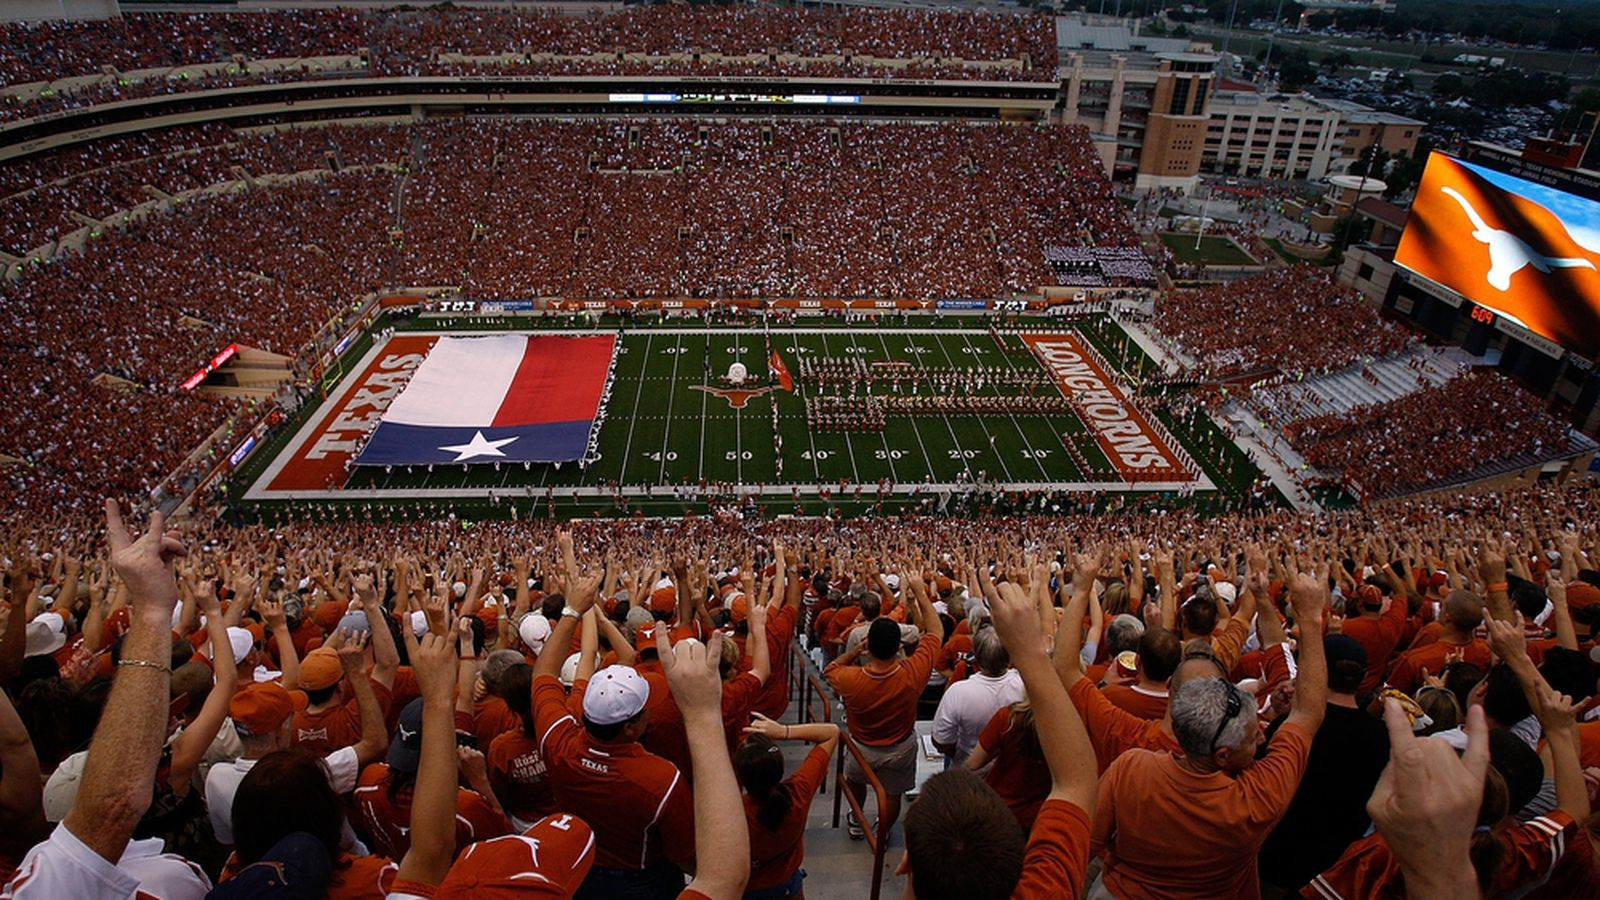 Dkr_texas_memorial_stadium.0